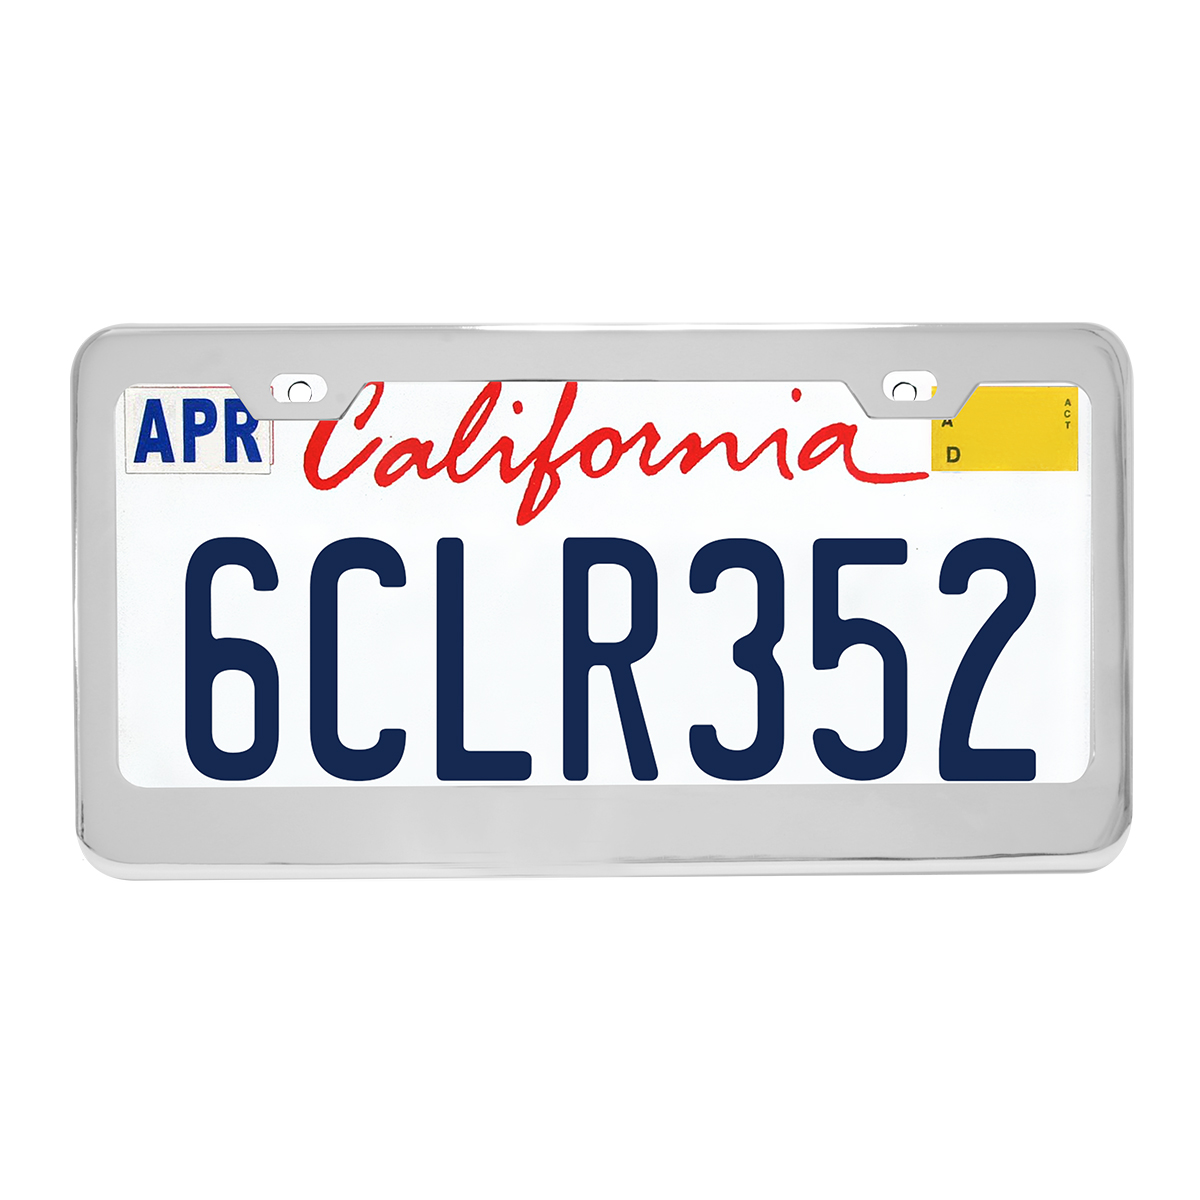 Plain Stainless Steel 2 Hole License Plate Frame - Profile View